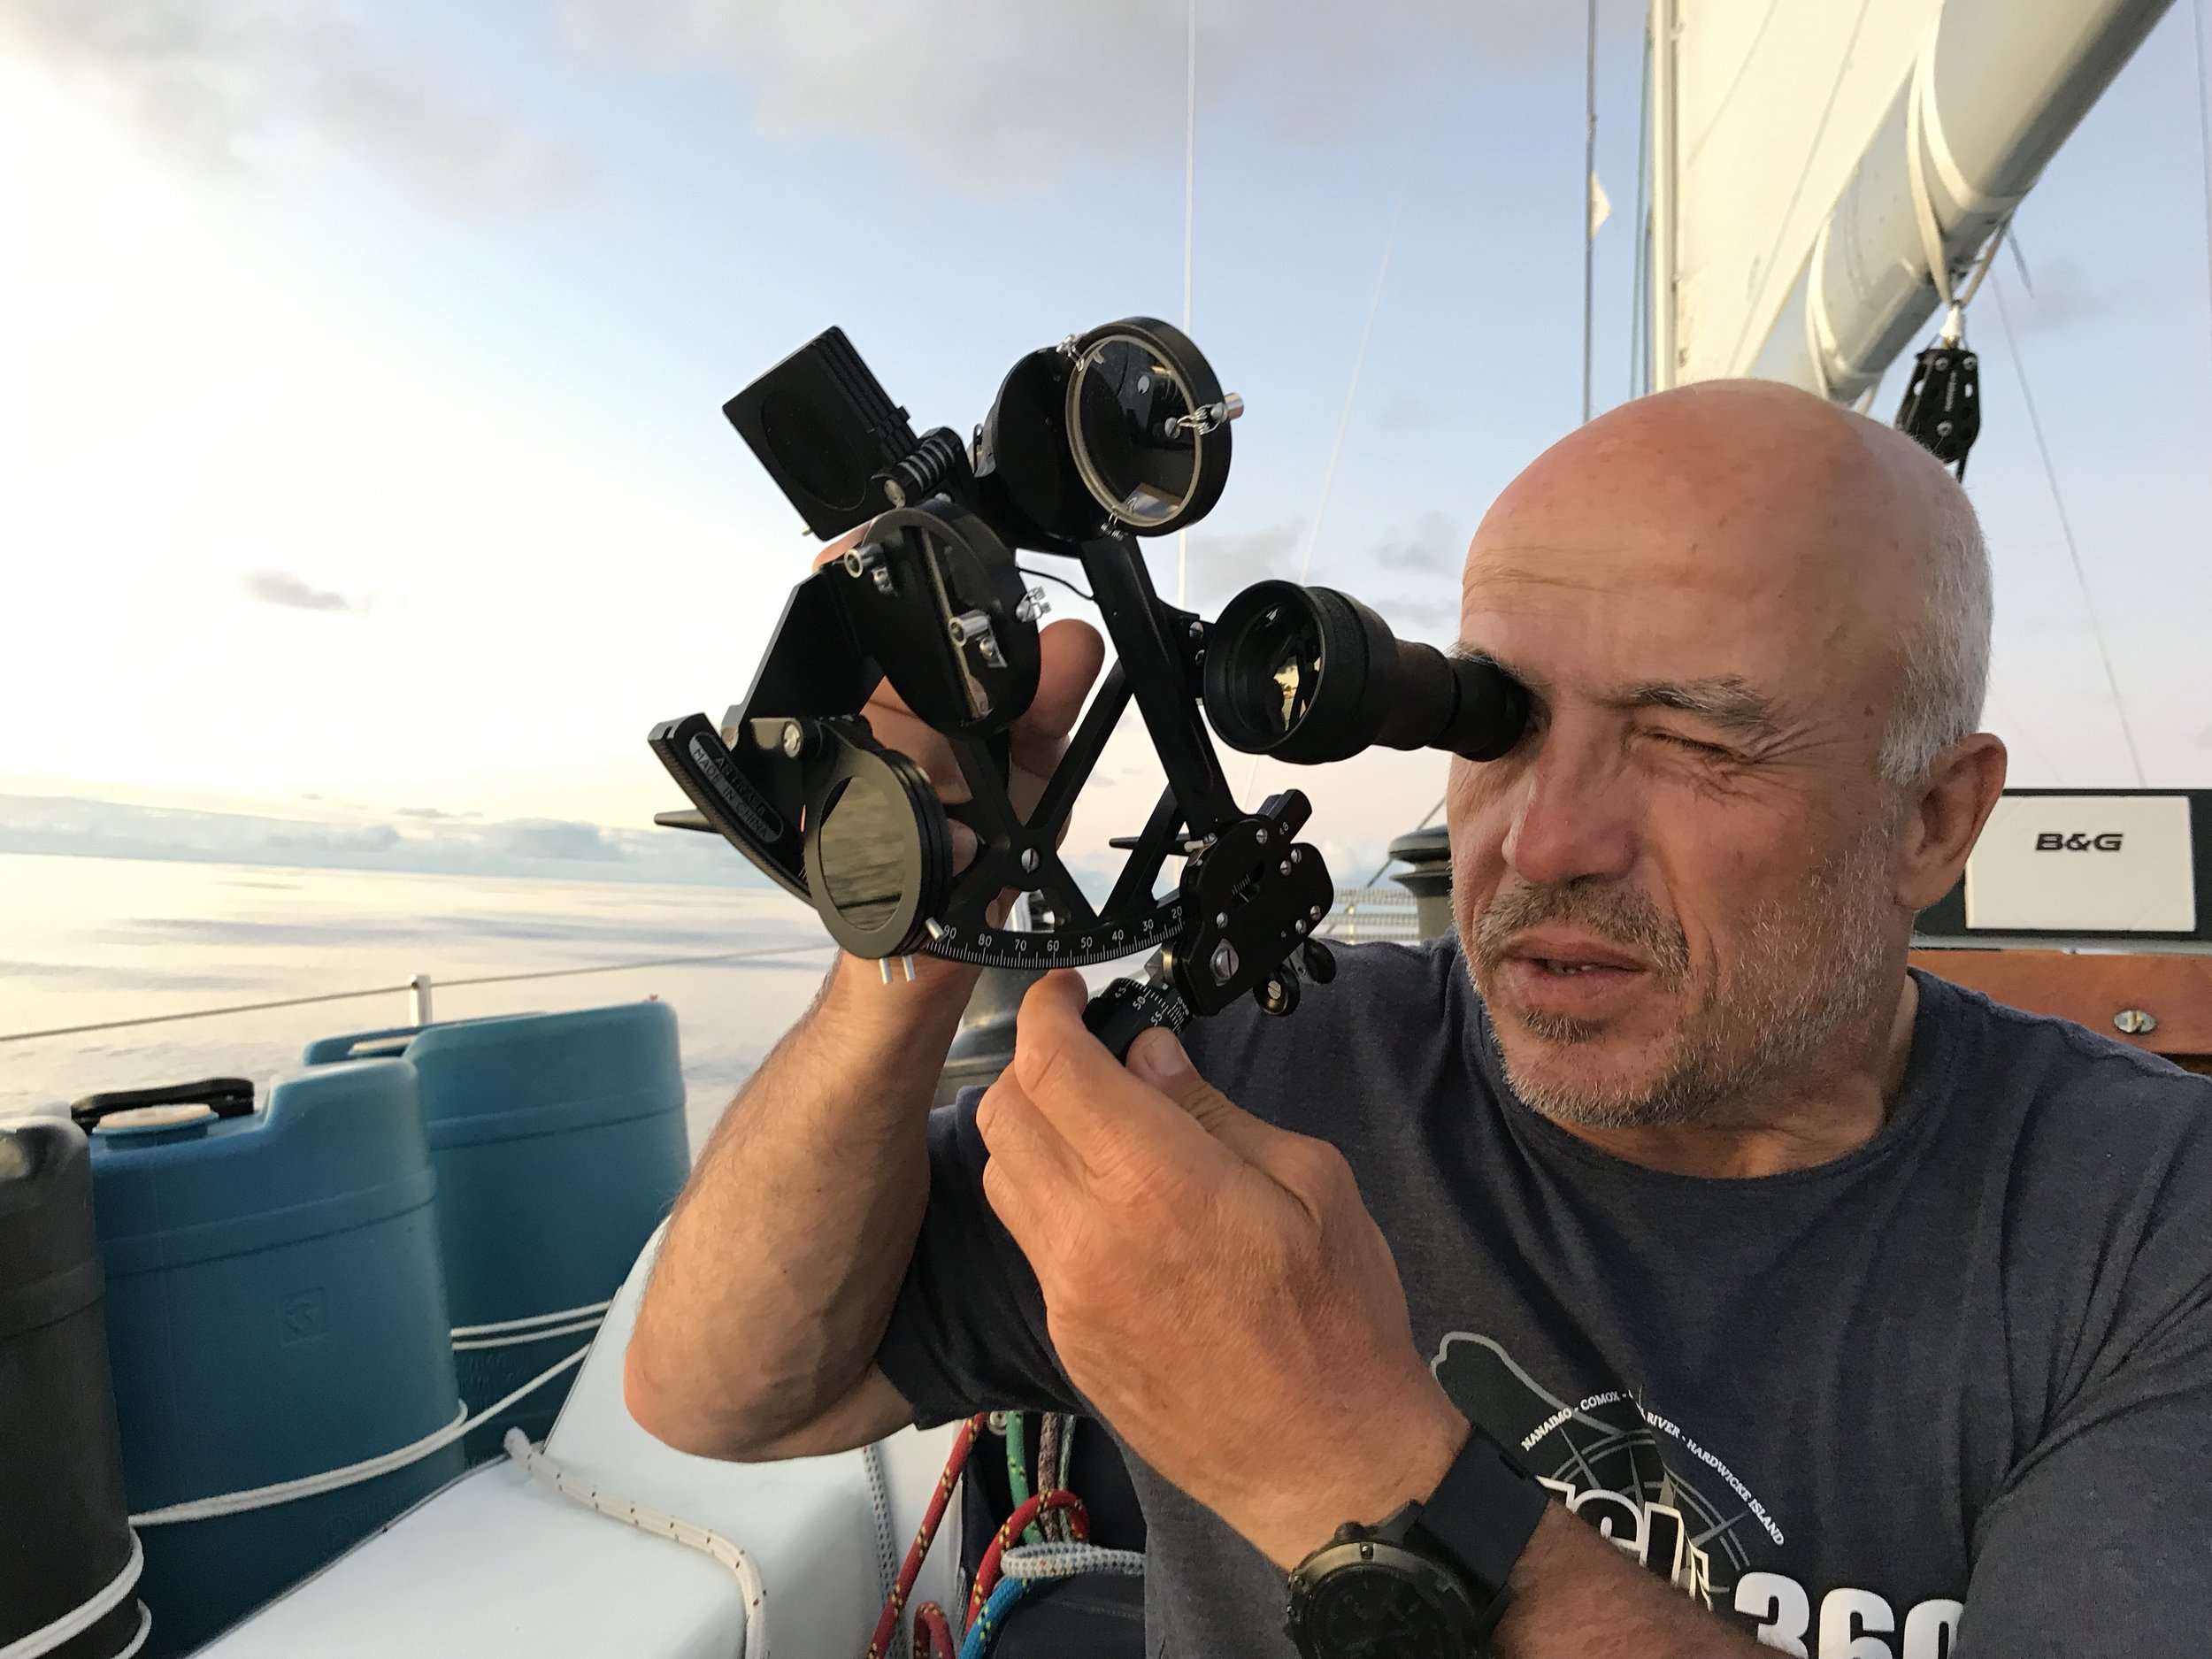 Ever wanted to know how to navigate by the sun and stars? We are offering an approachable introduction to celestial navigation.